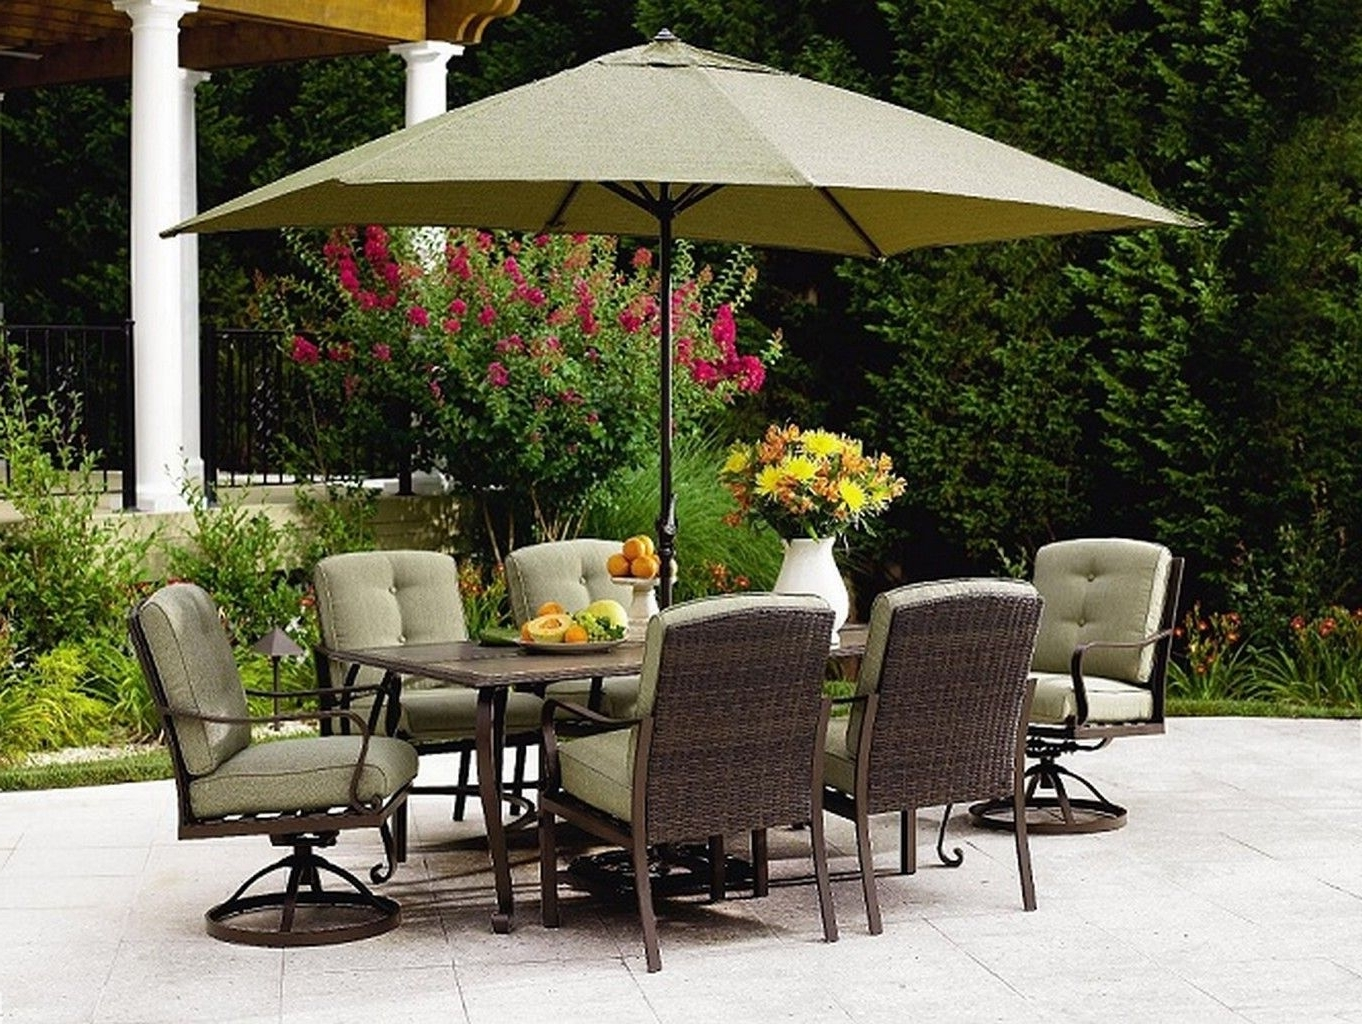 Best And Newest Cool Outdoor Patio Sets With Umbrella Above Square Table And Chairs Within Patio Dining Sets With Umbrellas (View 1 of 20)